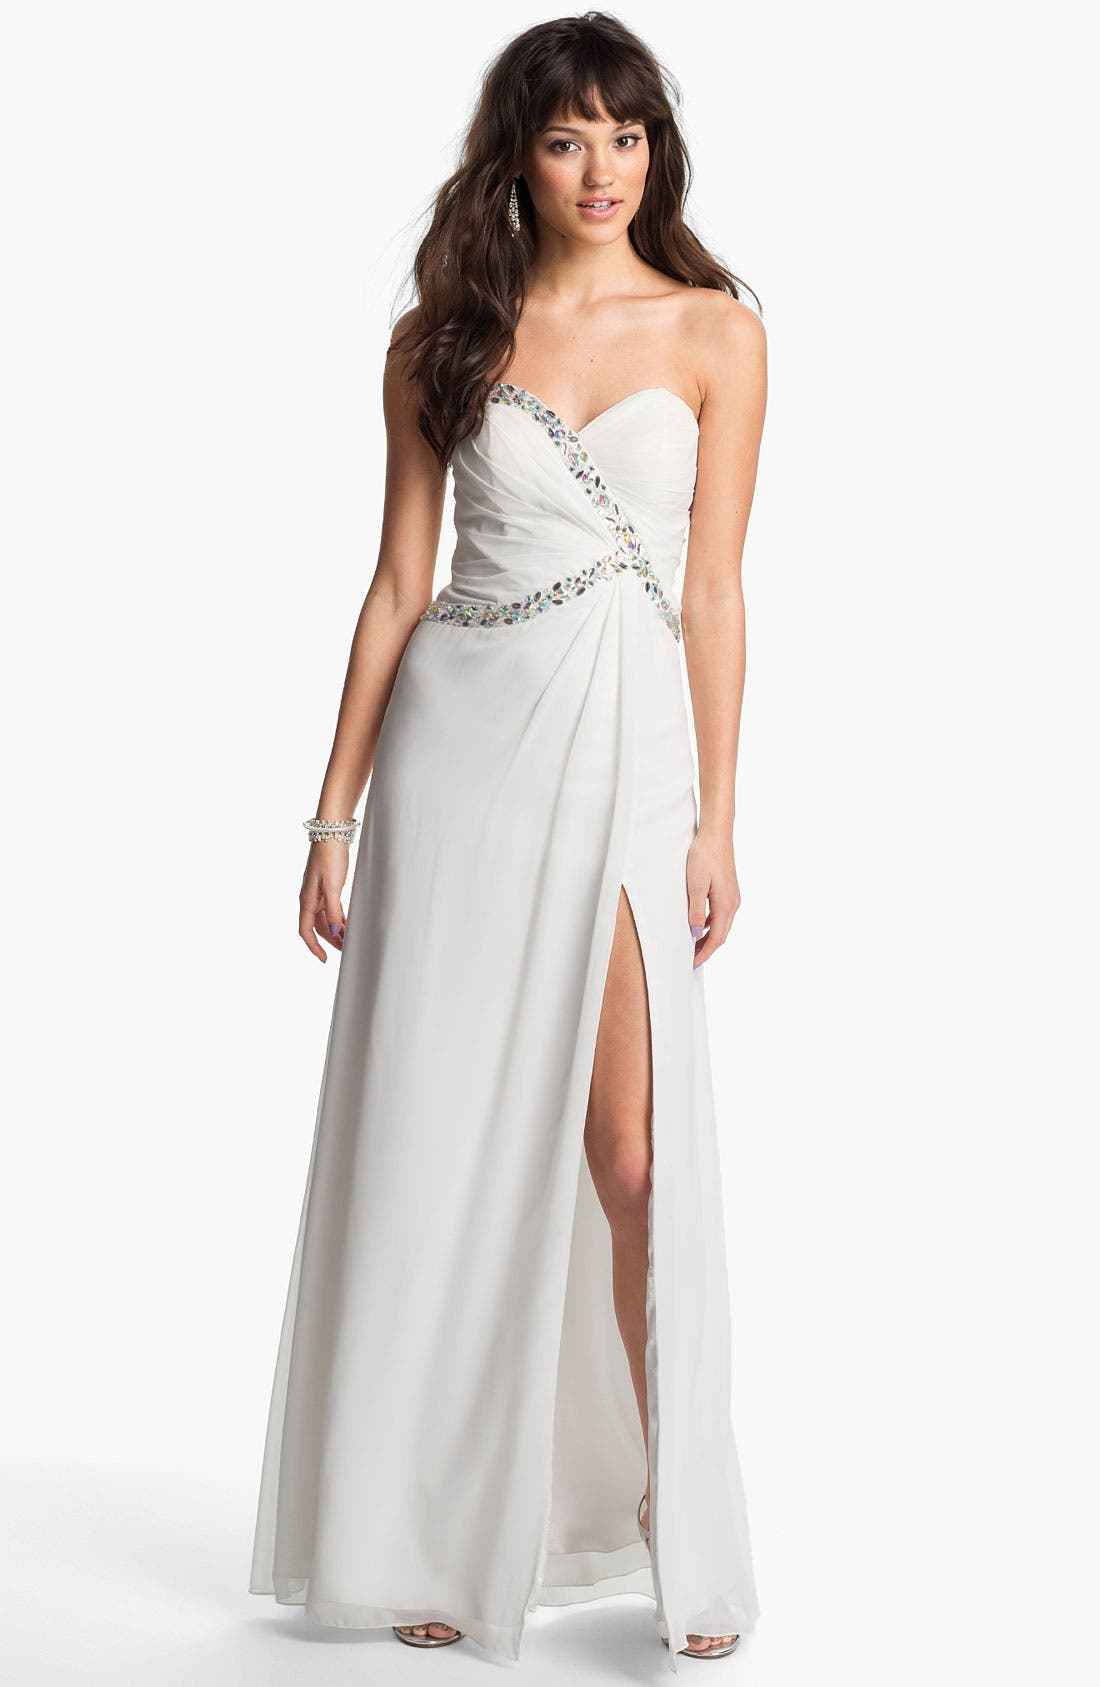 Main Image - Faviana Embellished Back Twist Chiffon Gown (Online Only)